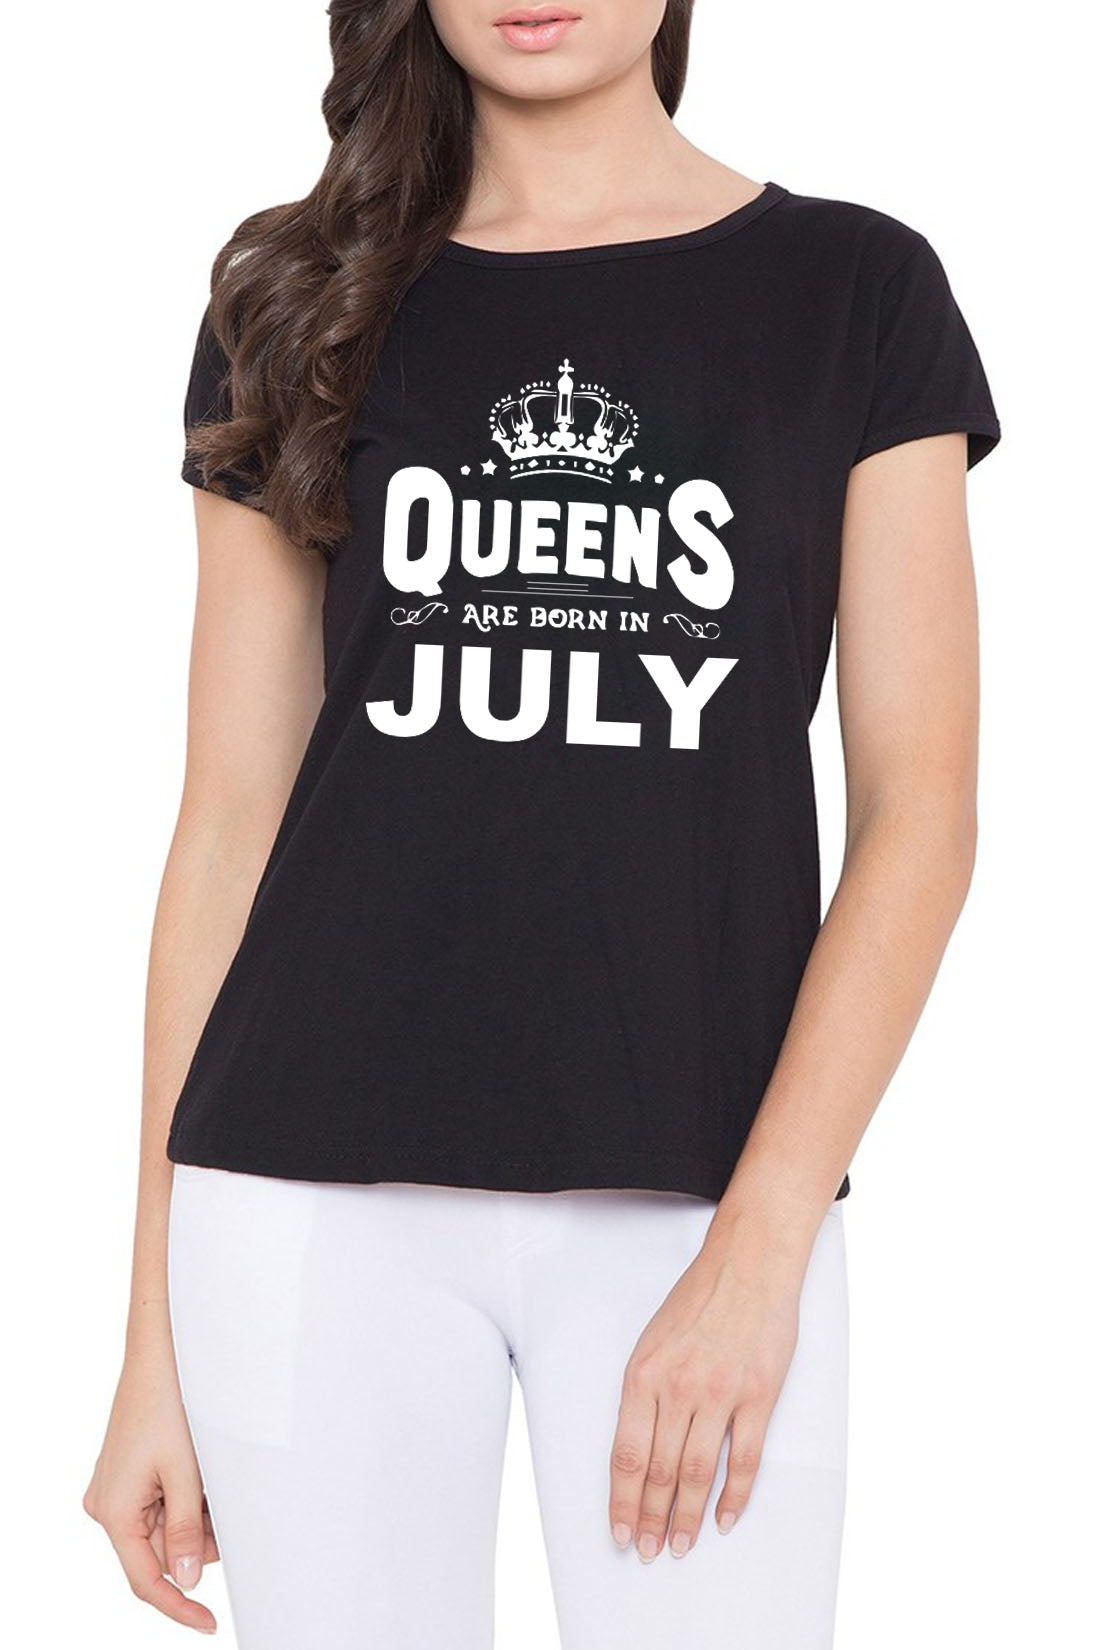 Birthday 7 0 -Queens are born in July Roundneck T-shirt